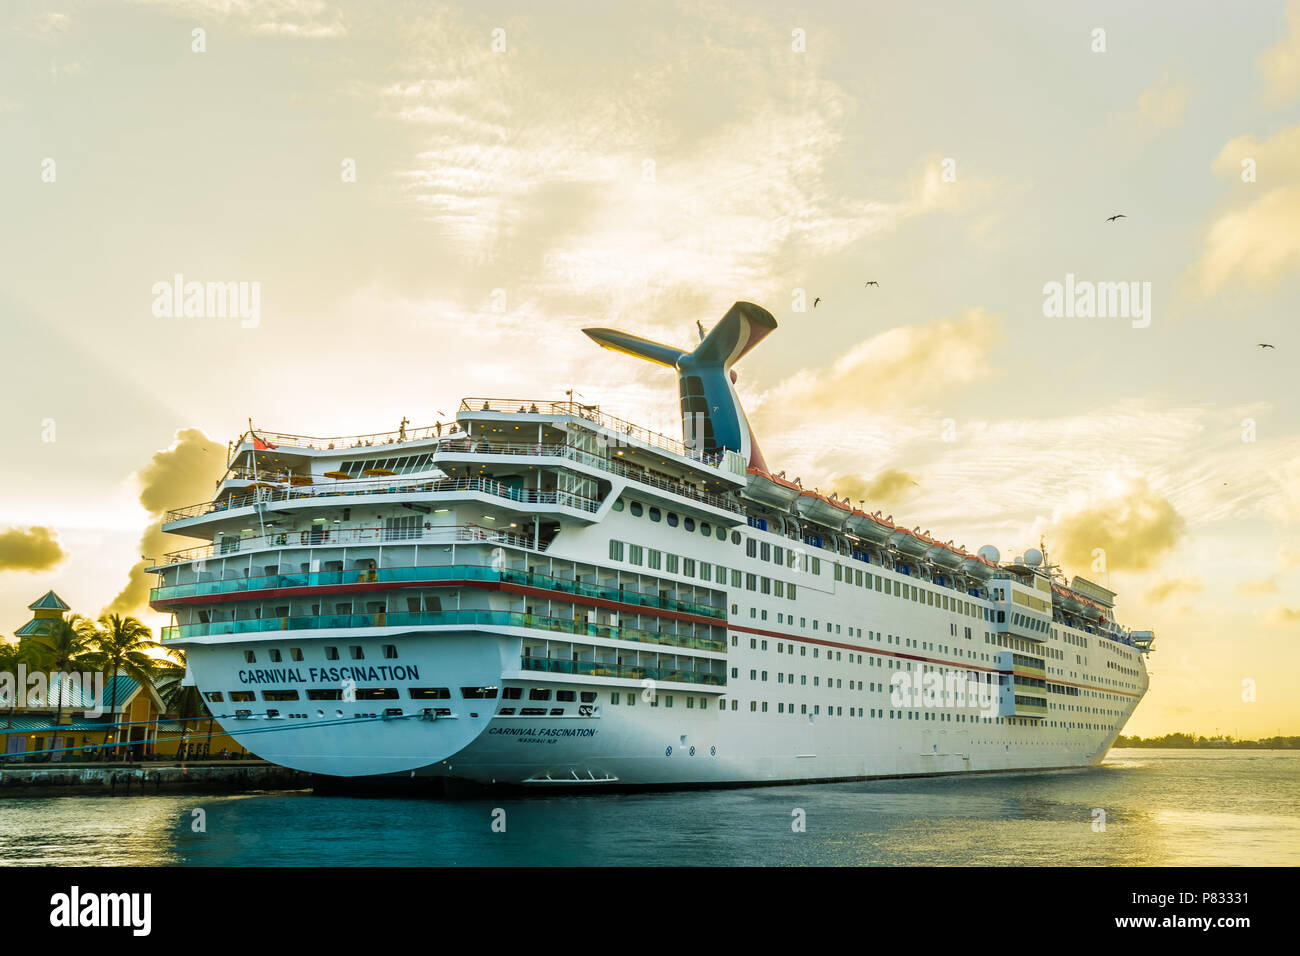 Nassau, Bahamas - December 02 2015: Carnival Fascination Cruise Ship docked in Nassau Cruise Port. - Stock Image